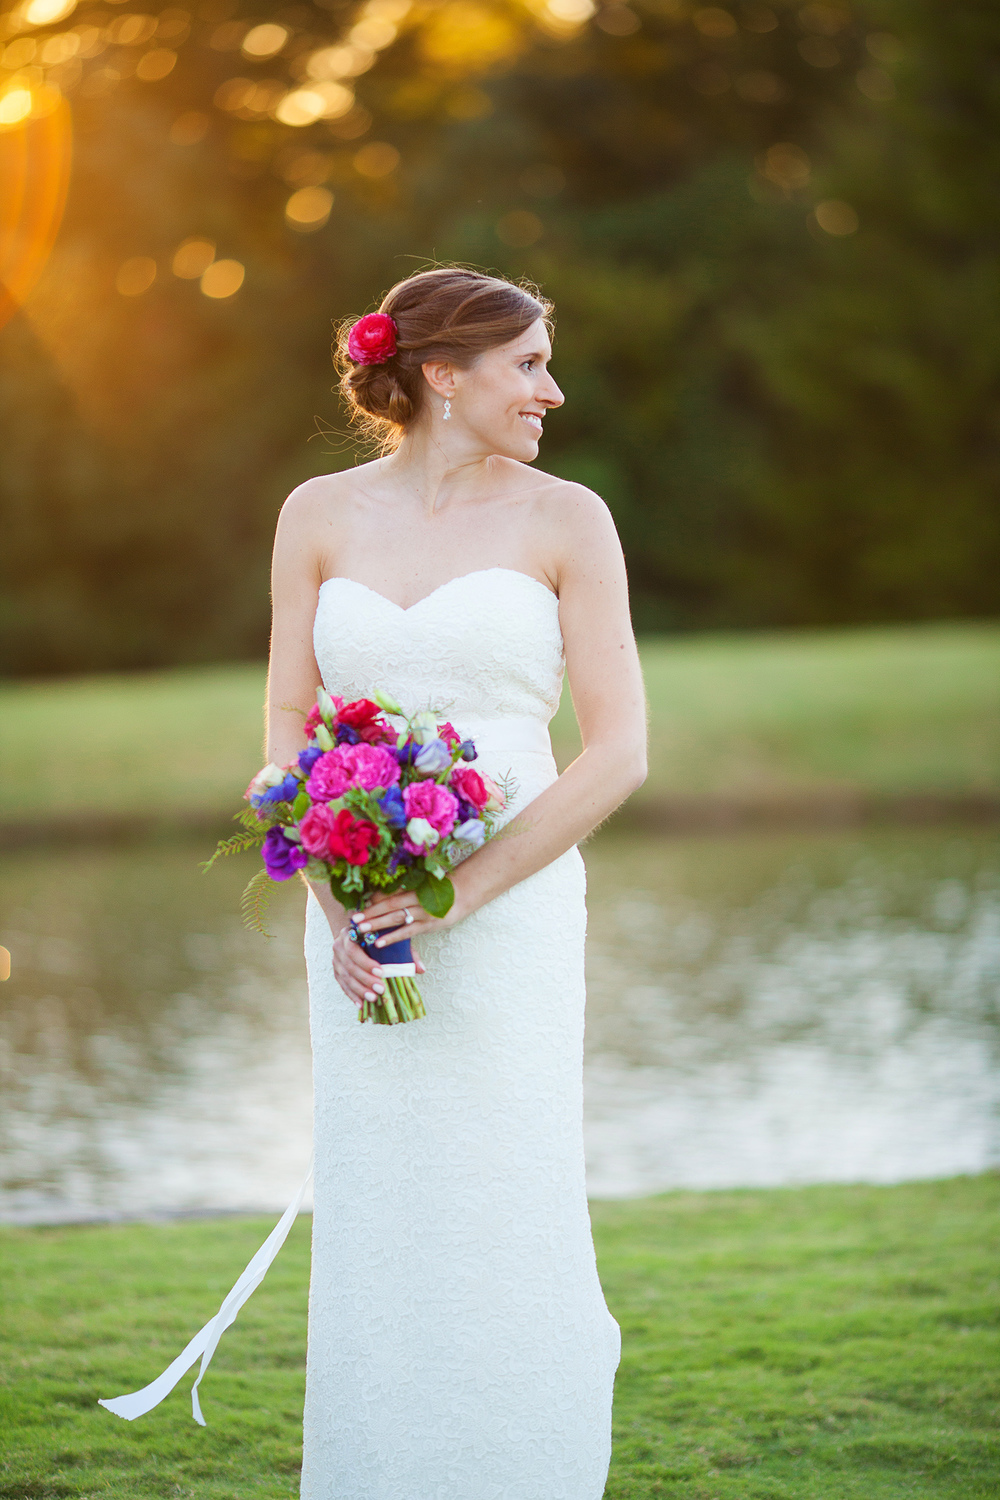 Bridal Portraits at Brier Creek Country Club